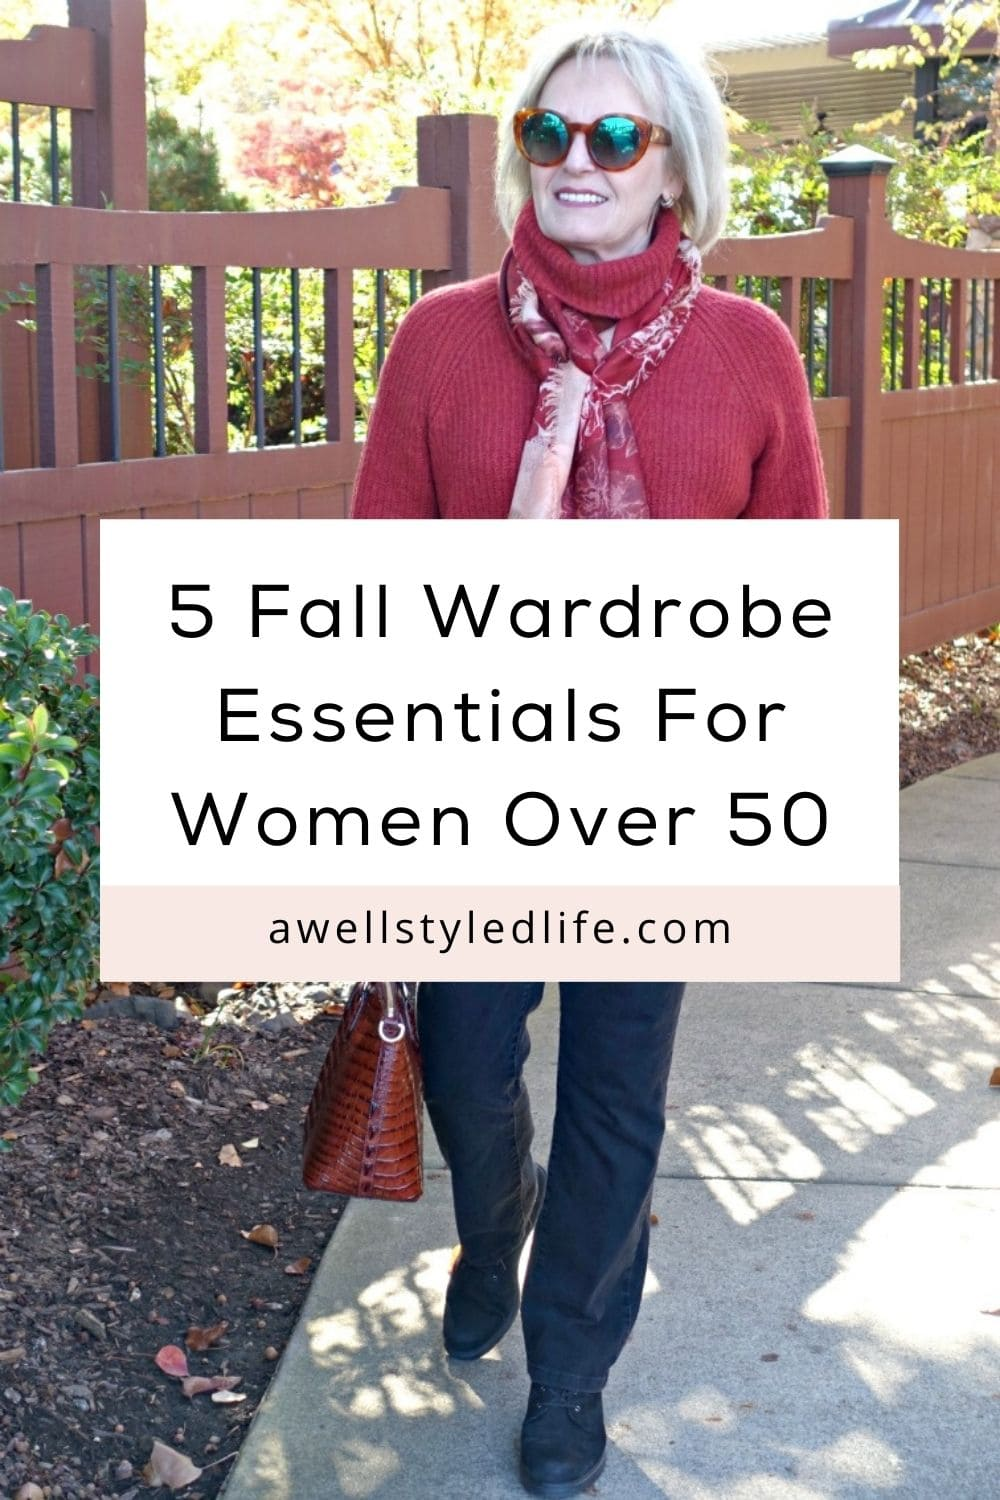 5 Fall Wardrobe Essentials for Women Over 50